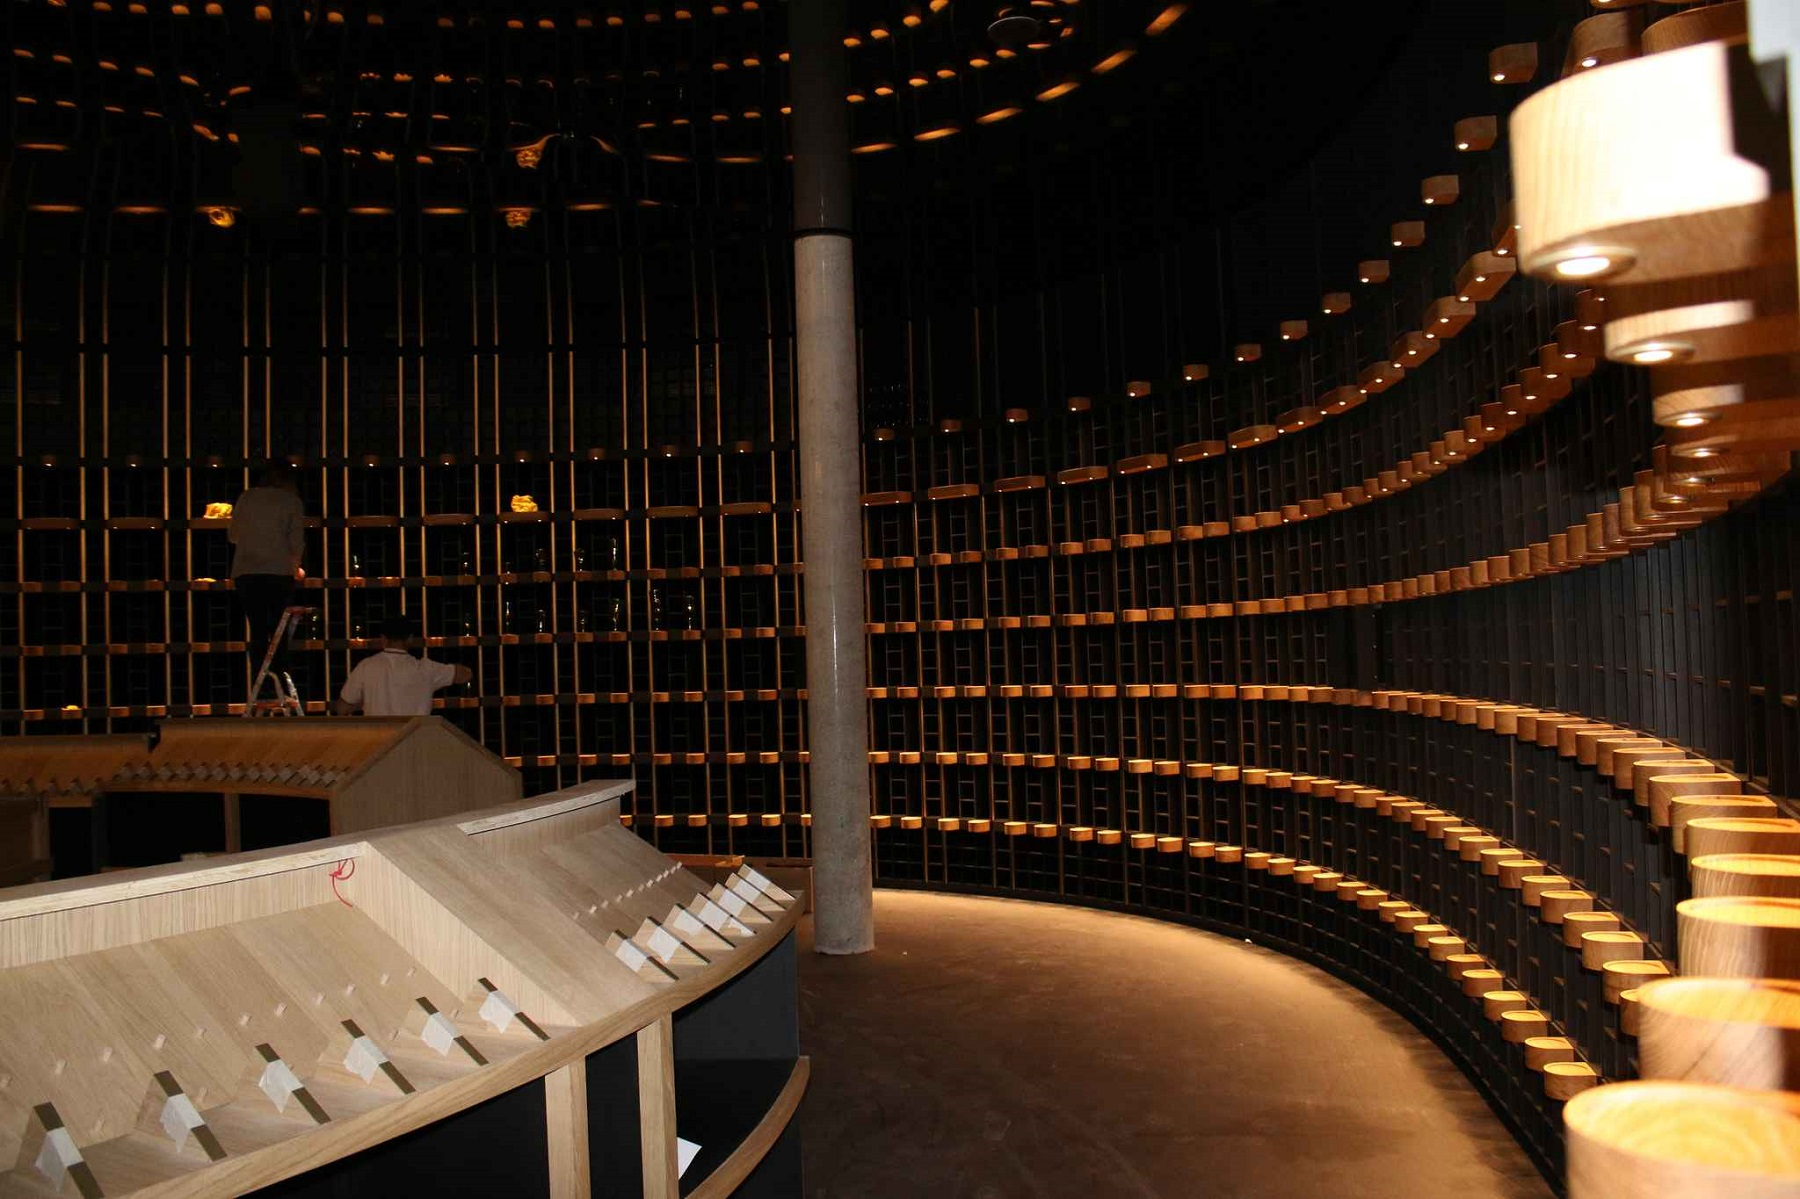 2048x1536-fit_cave-cite-vin-situee-rez-chaussee